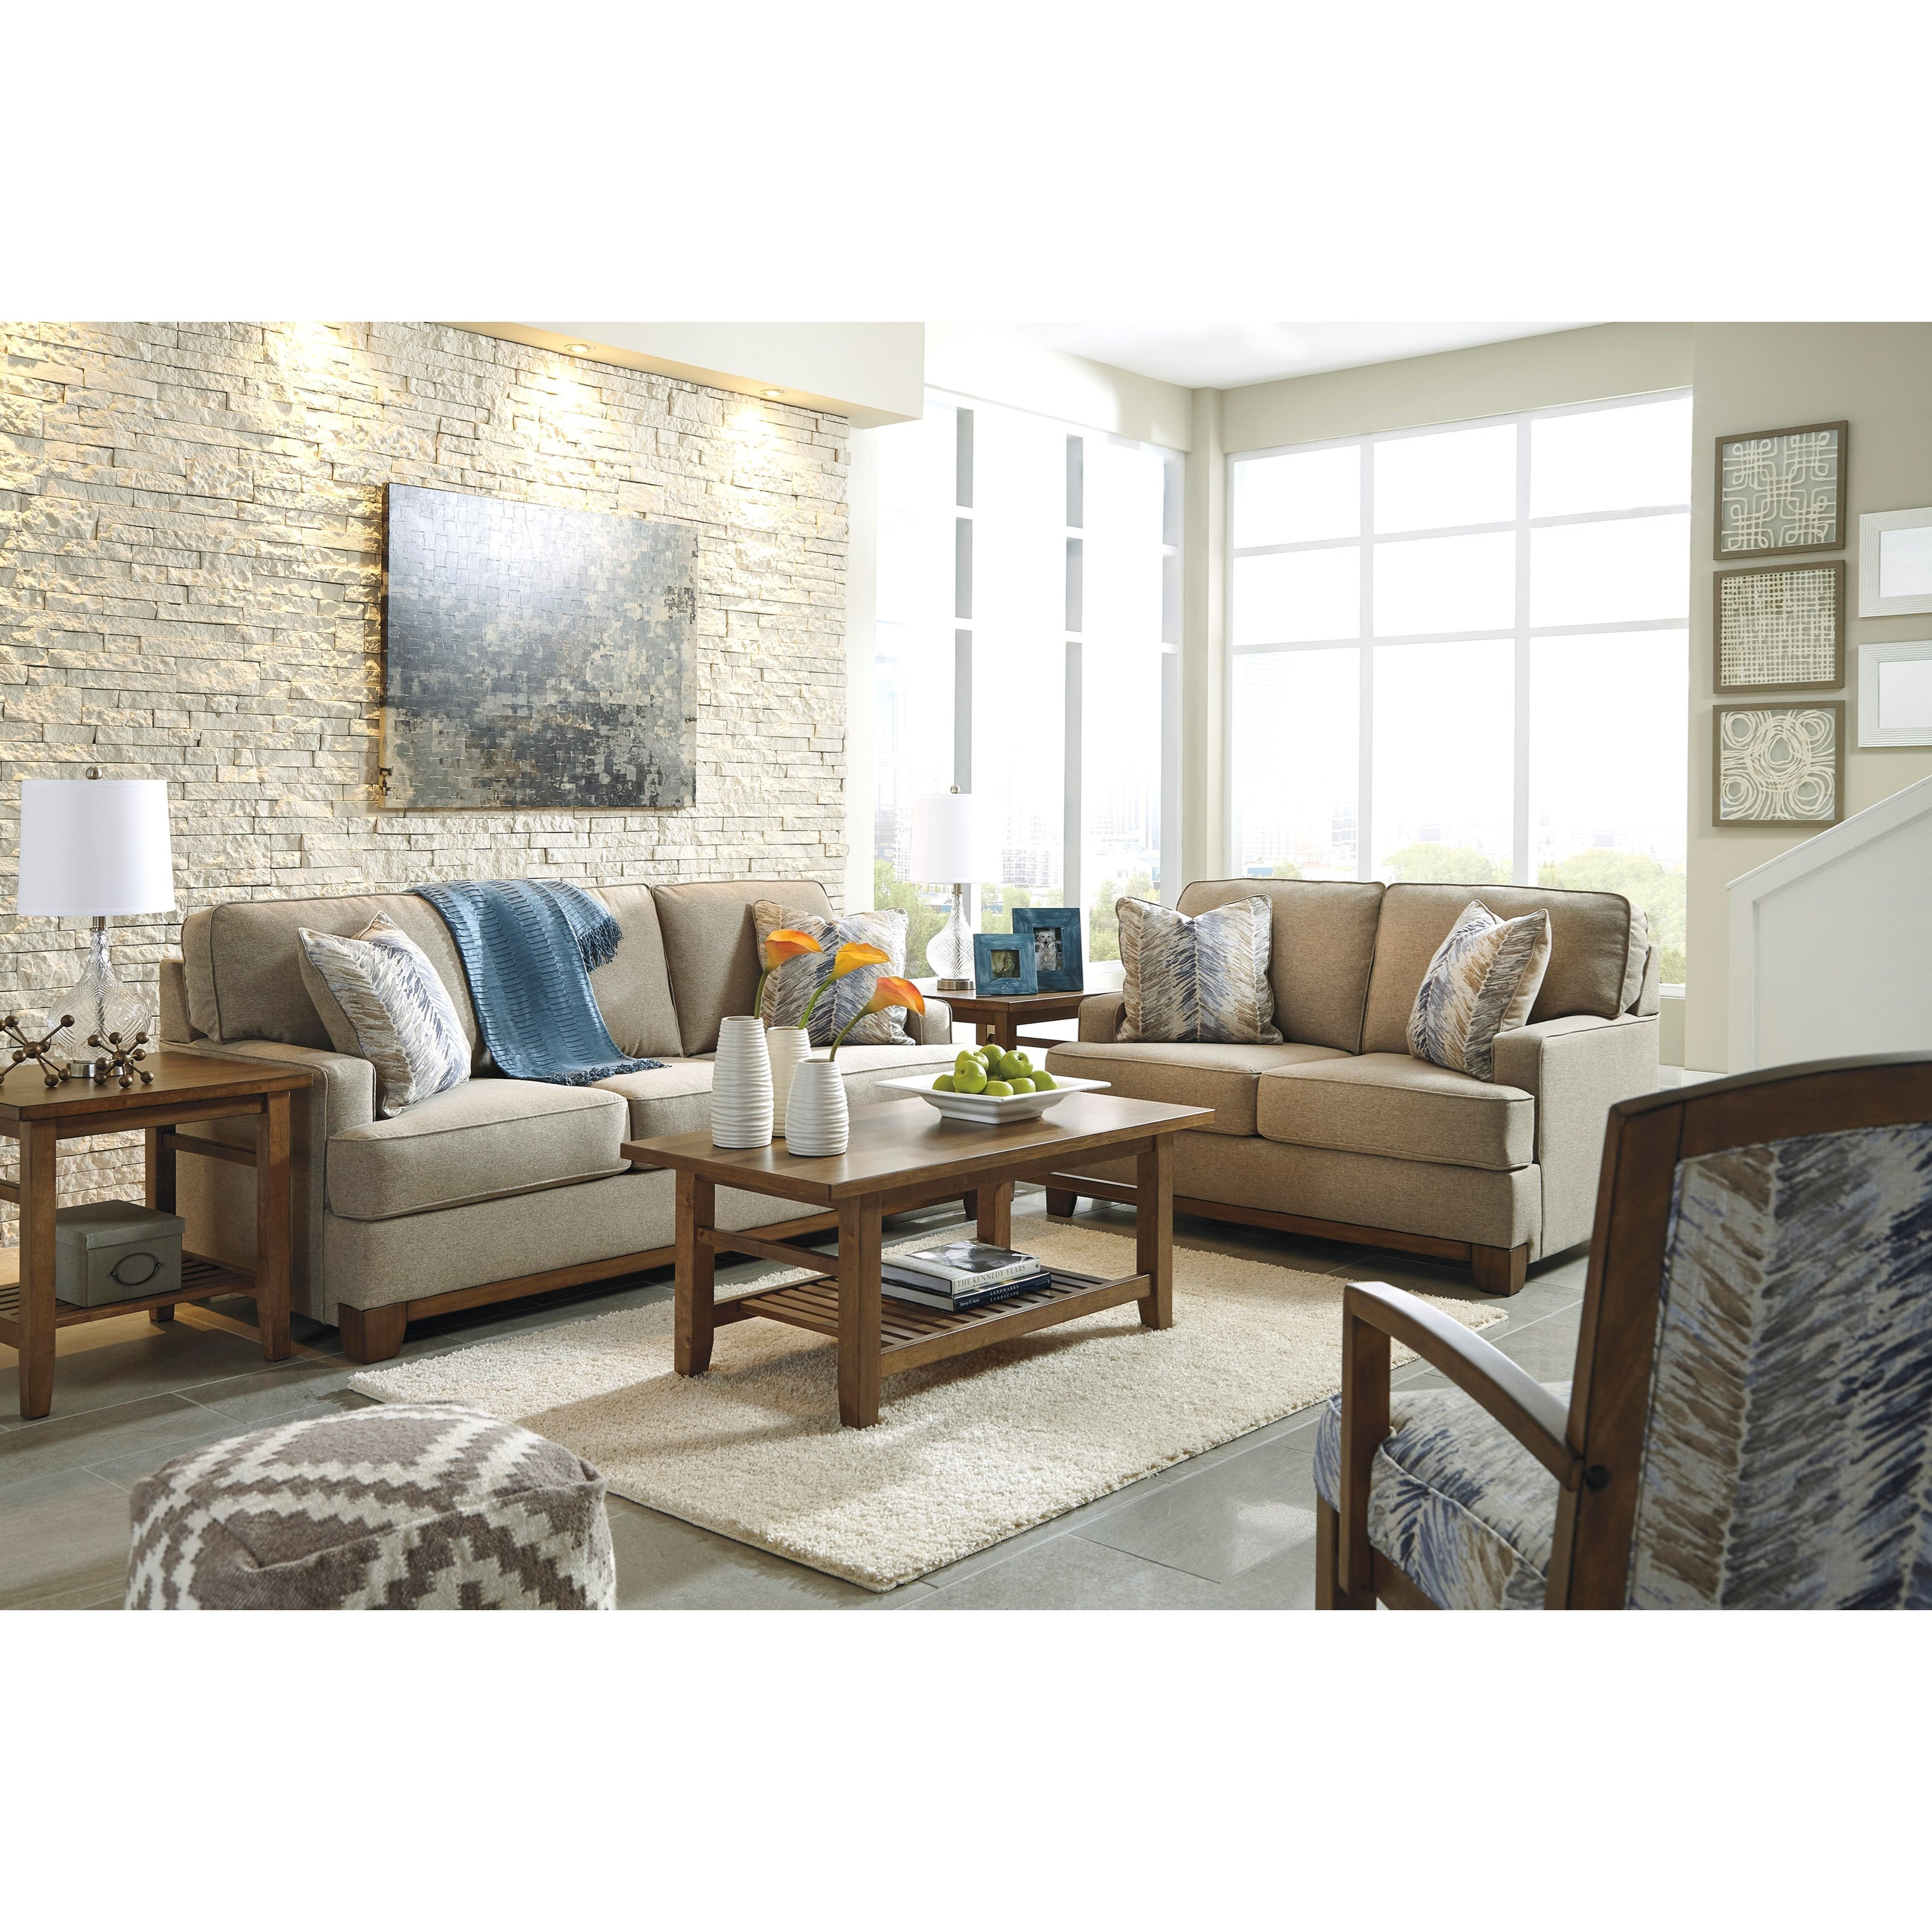 Stationary Living Room Group by Benchcraft | Wolf and Gardiner Wolf ...